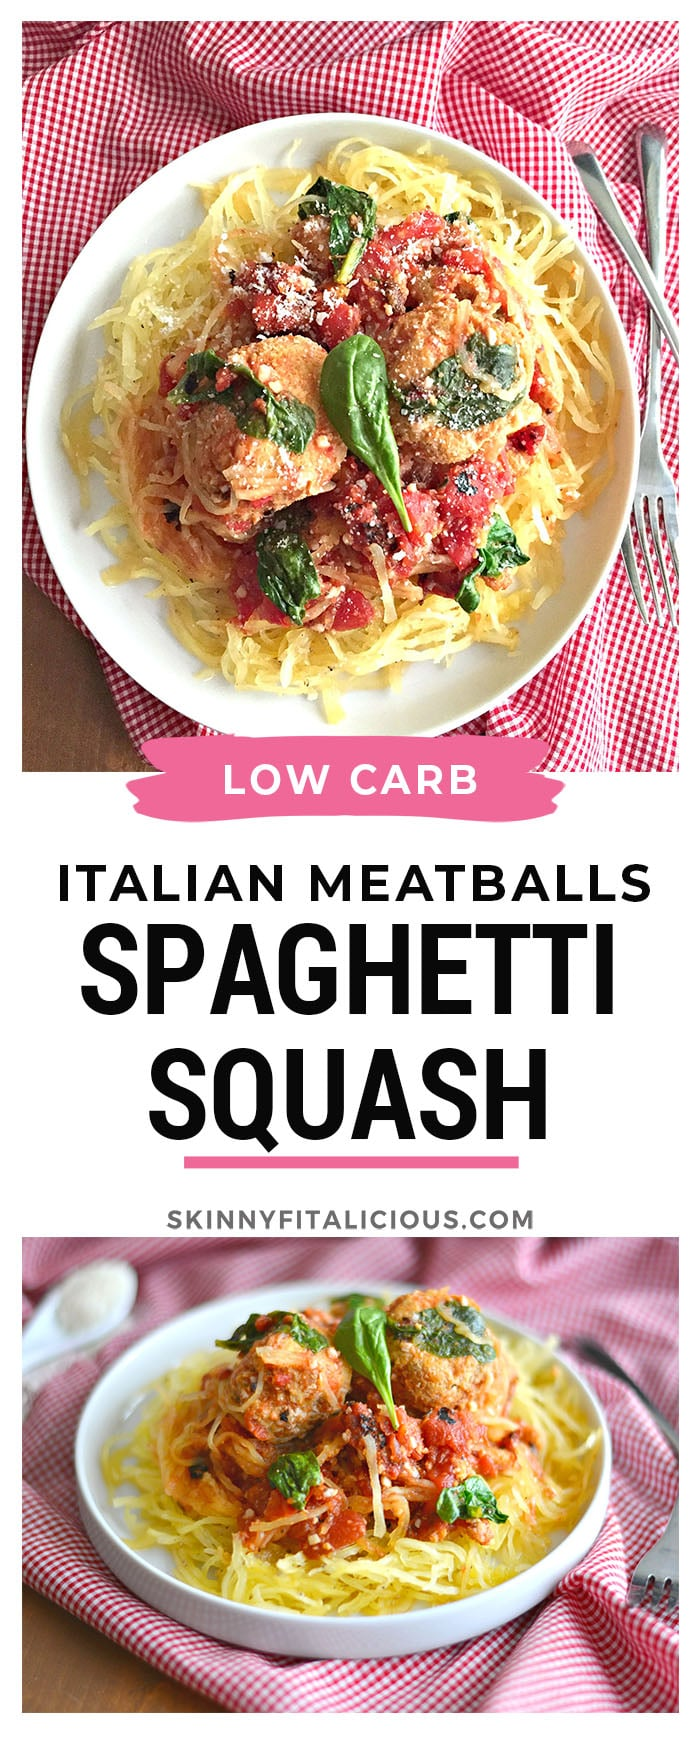 Turkey Veggie Meatballs With Spaghetti Squash packed with carrots, zucchini and onion and paired with spaghetti squash pasta making it paleo and gluten-free. A healthier and lighter alternative to pasta! Paleo + Gluten Free + Low Calorie